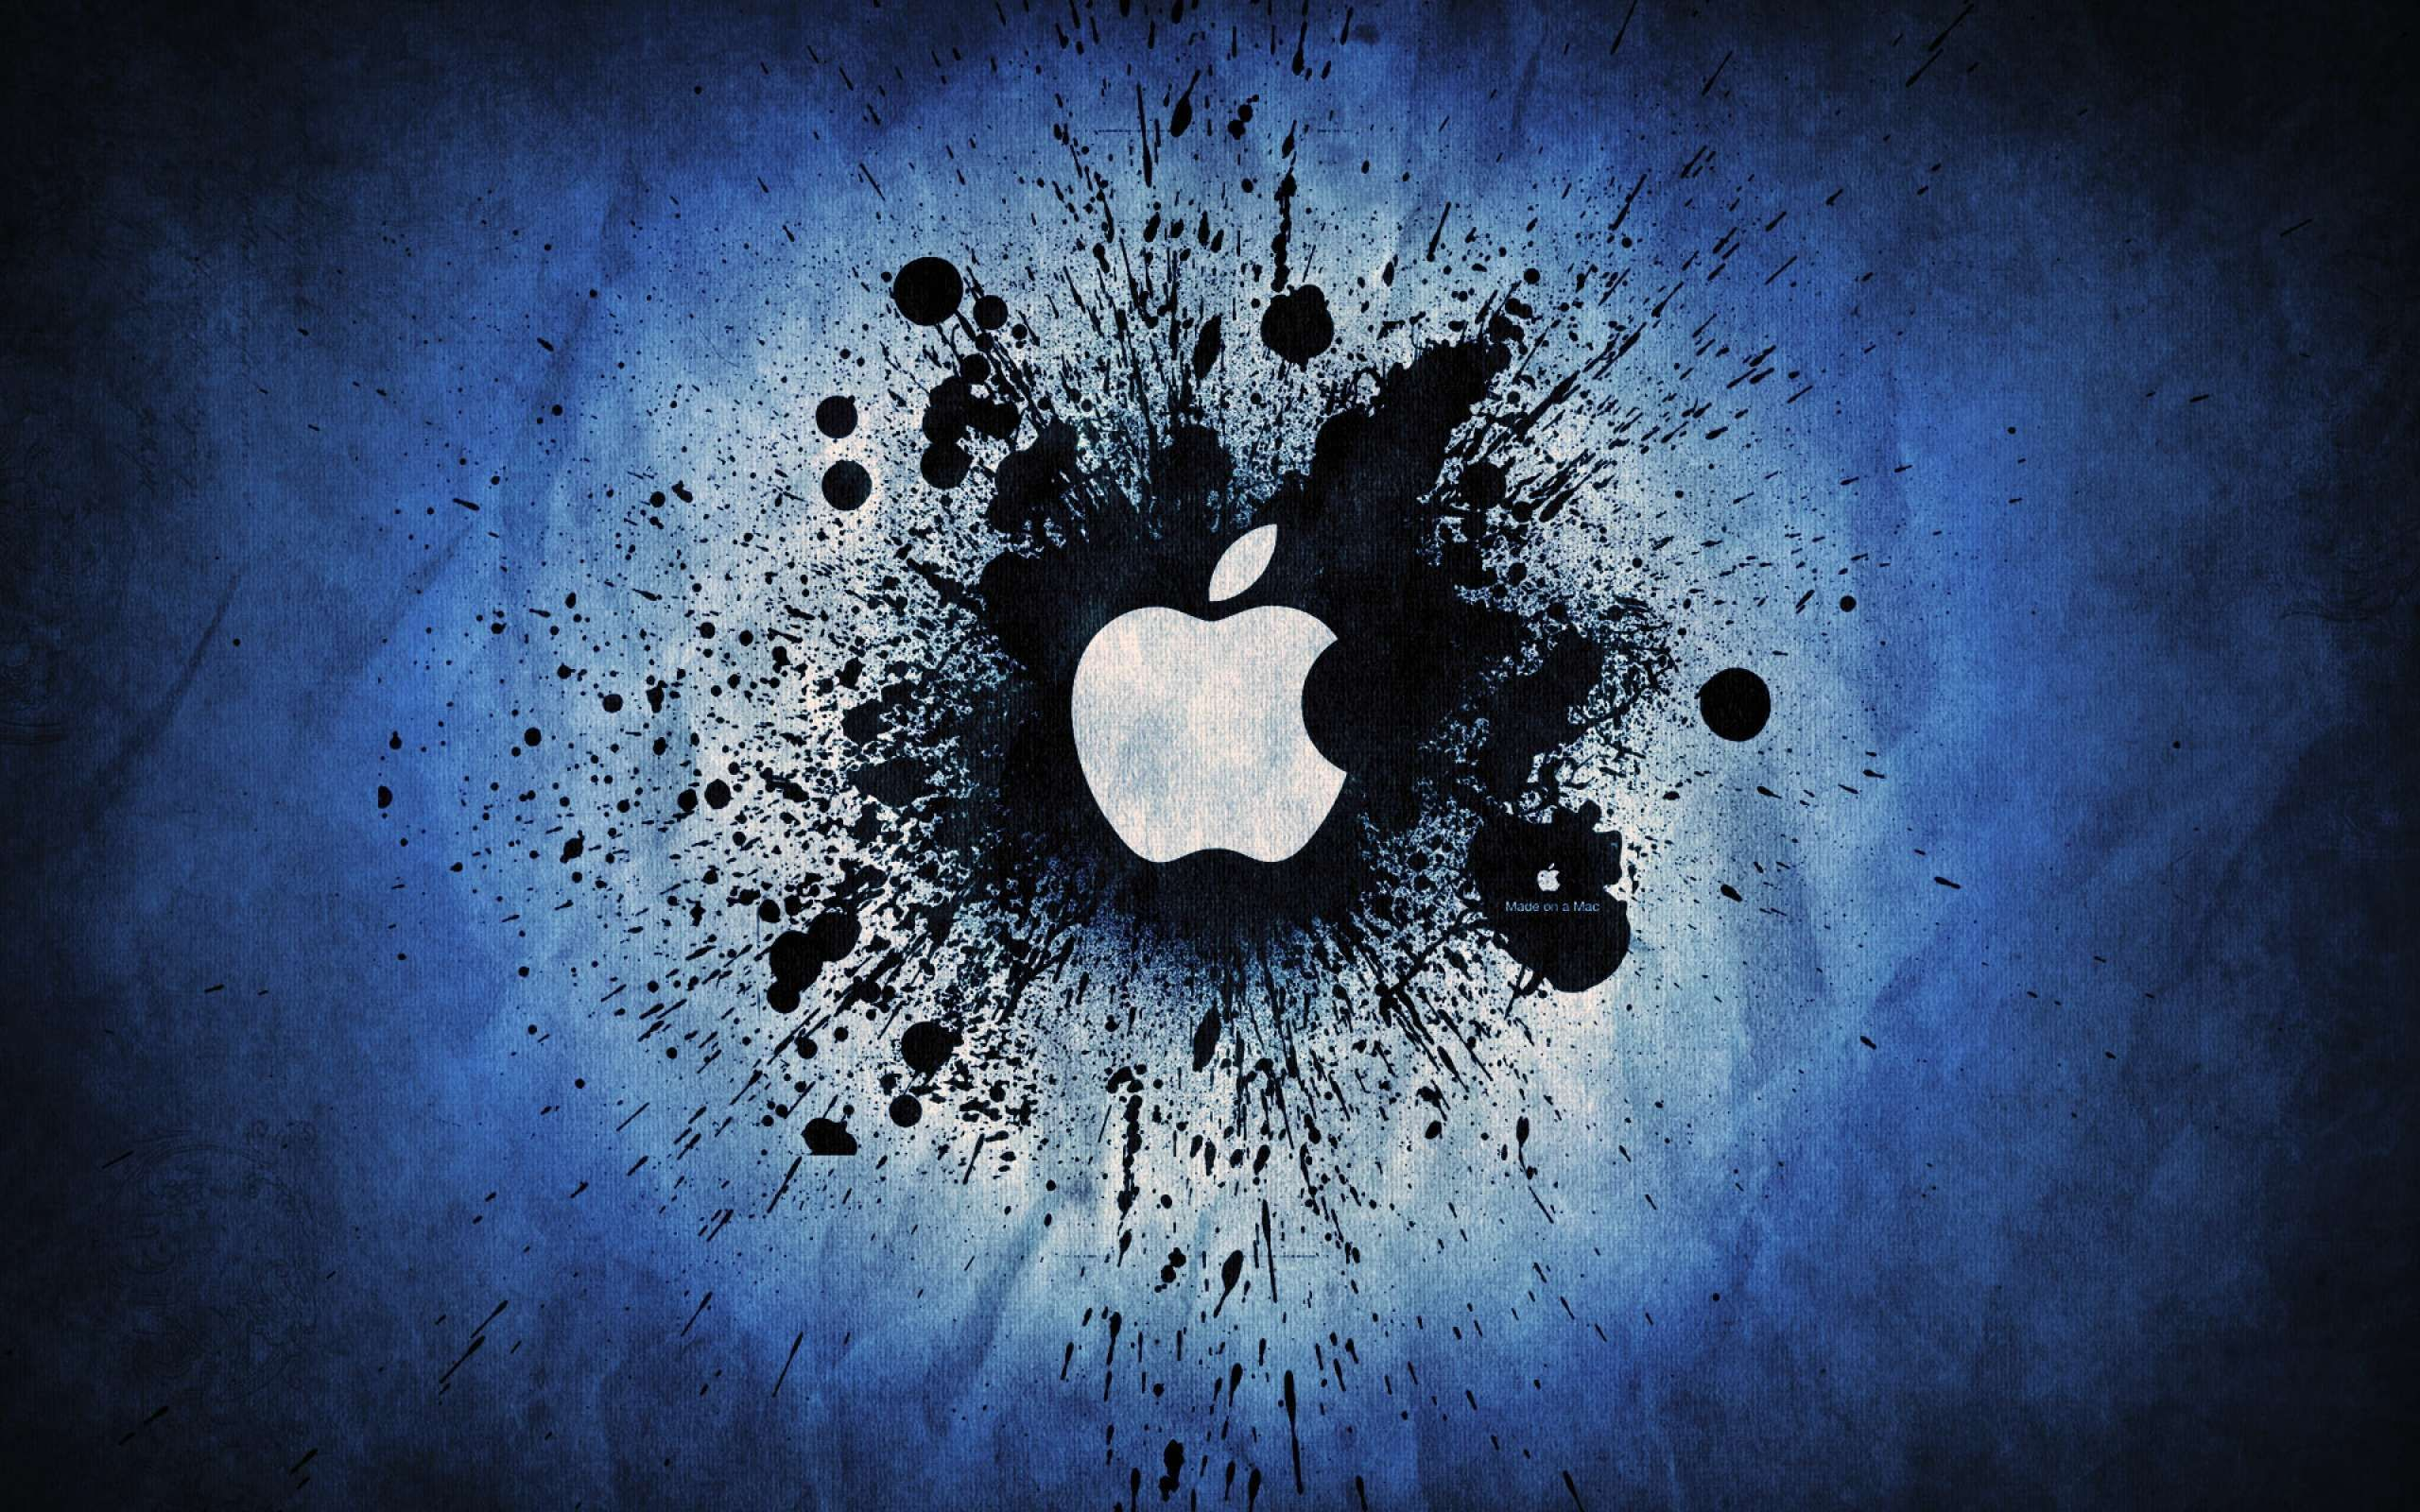 Fonds d'écran Apple tous les wallpapers Apple Fond d